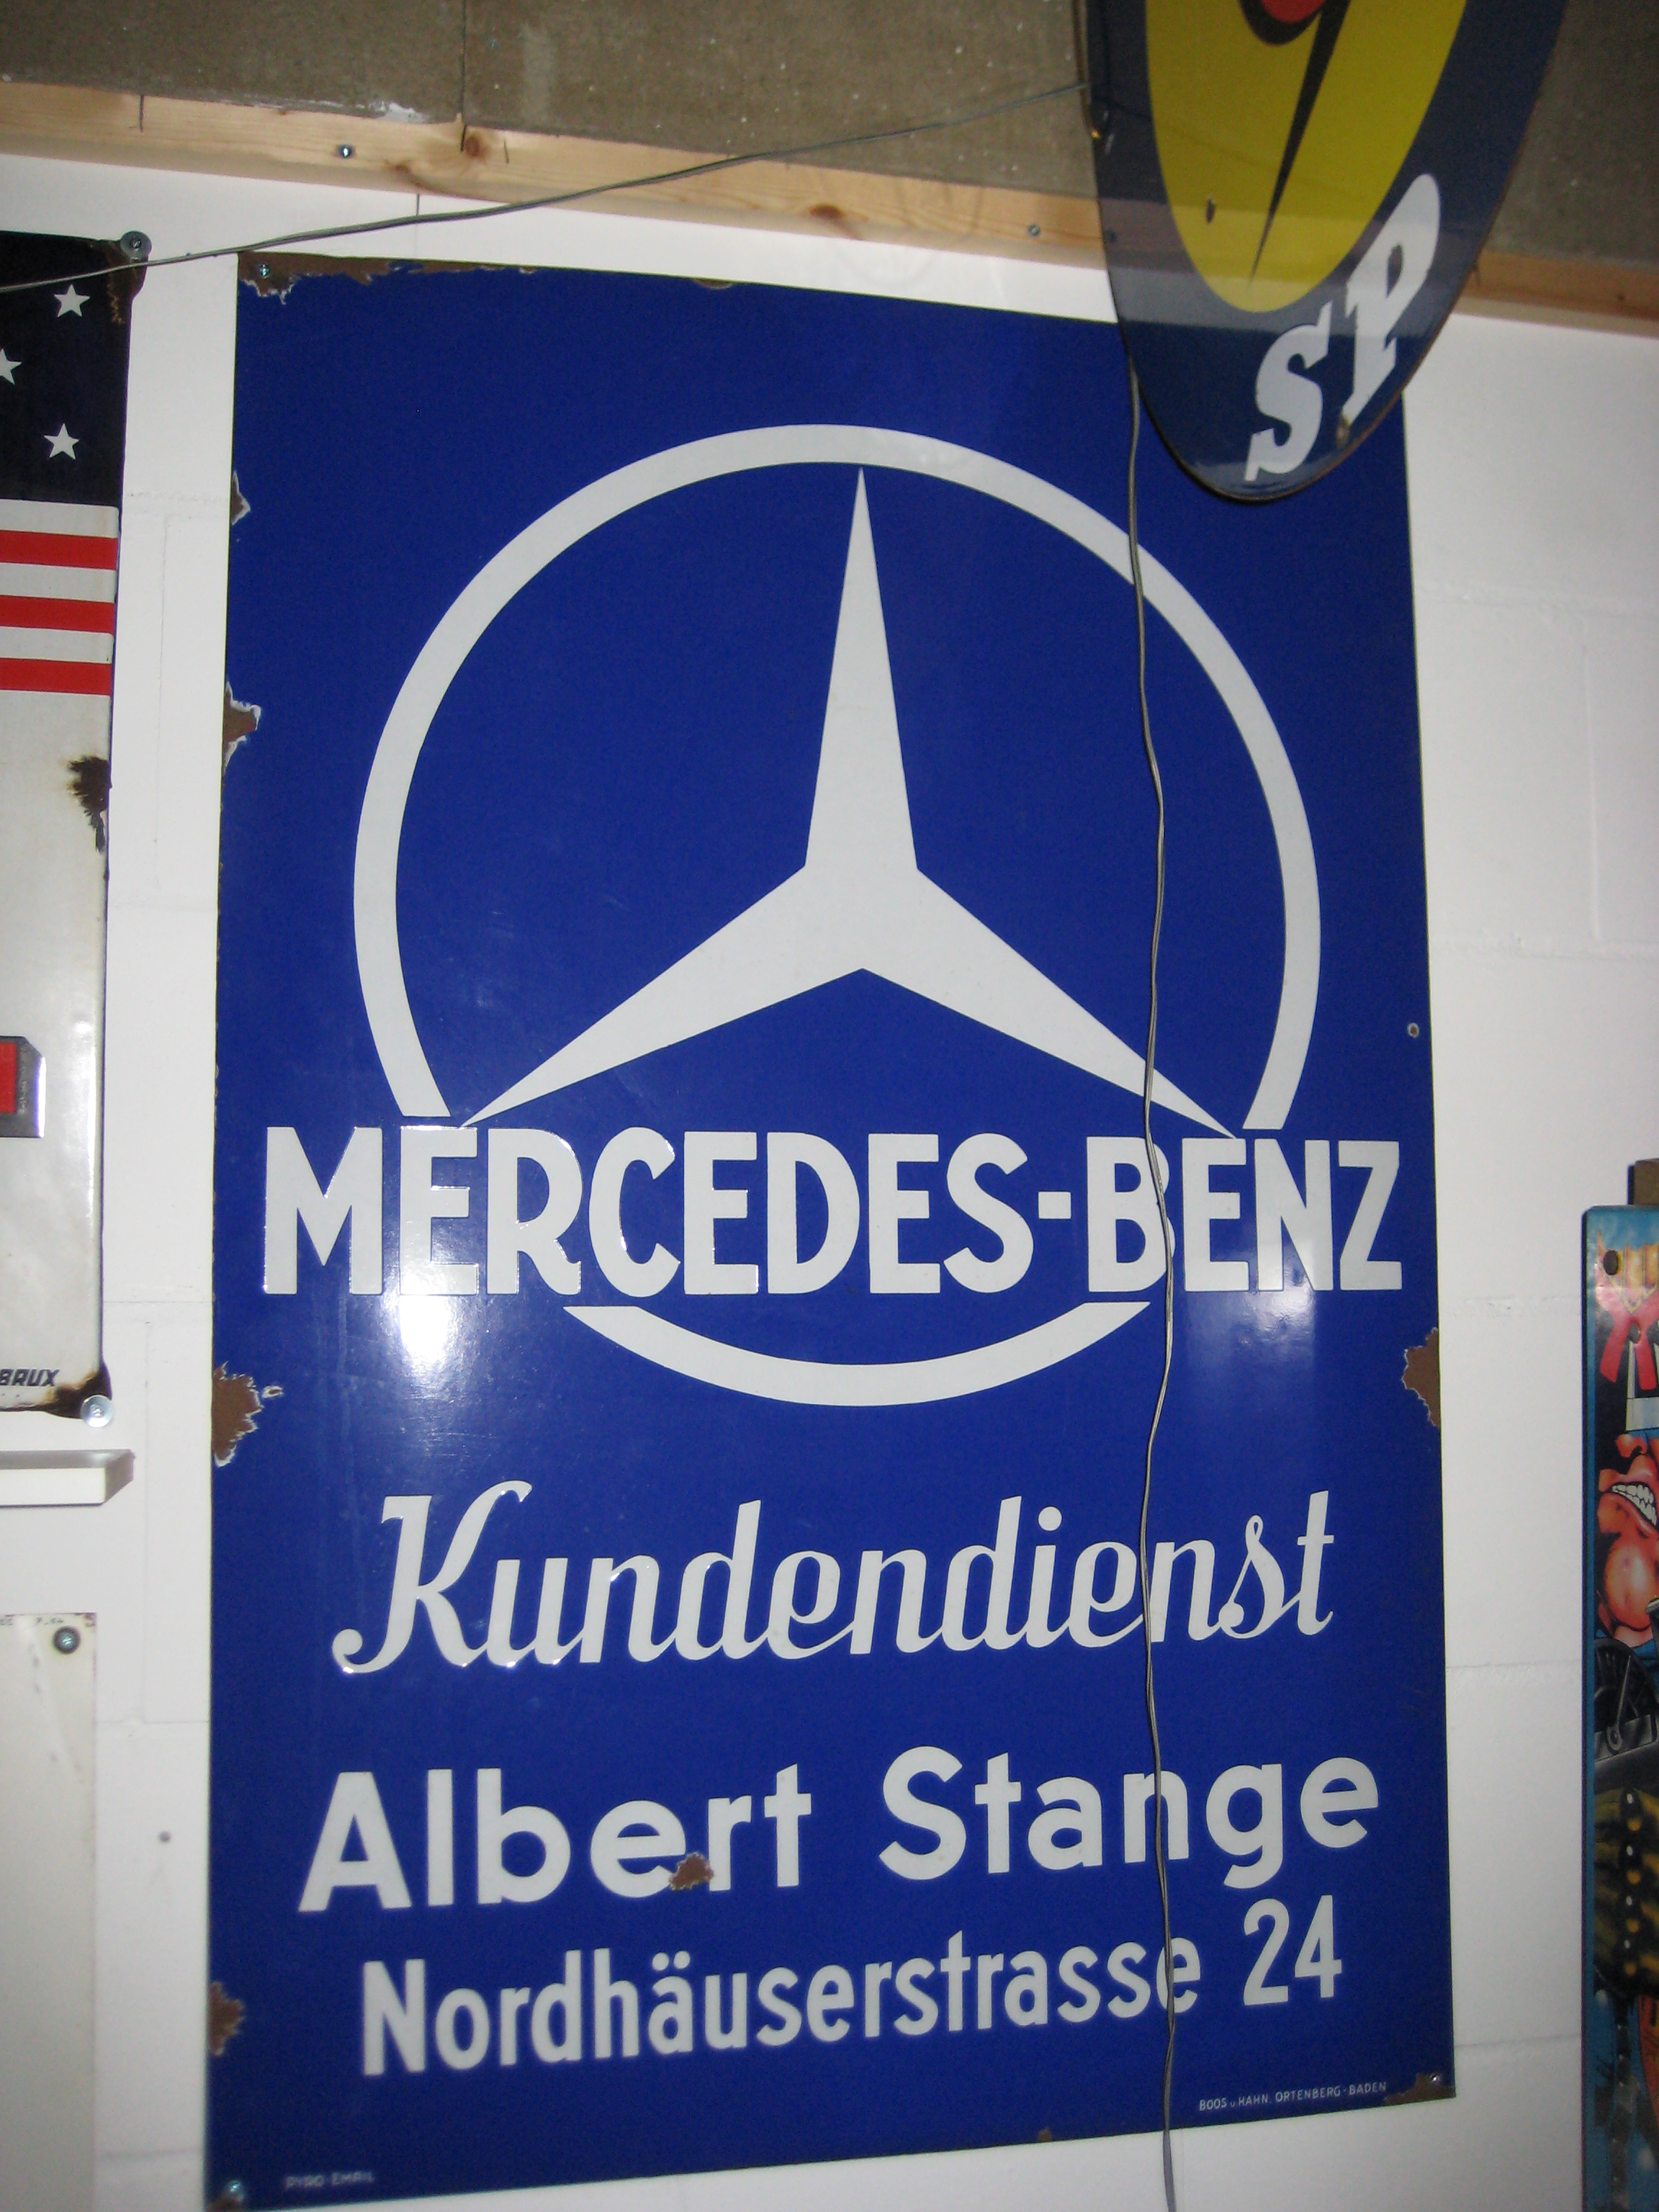 Mercedes benz sign 155 petrolclassic for Mercedes benz sign in